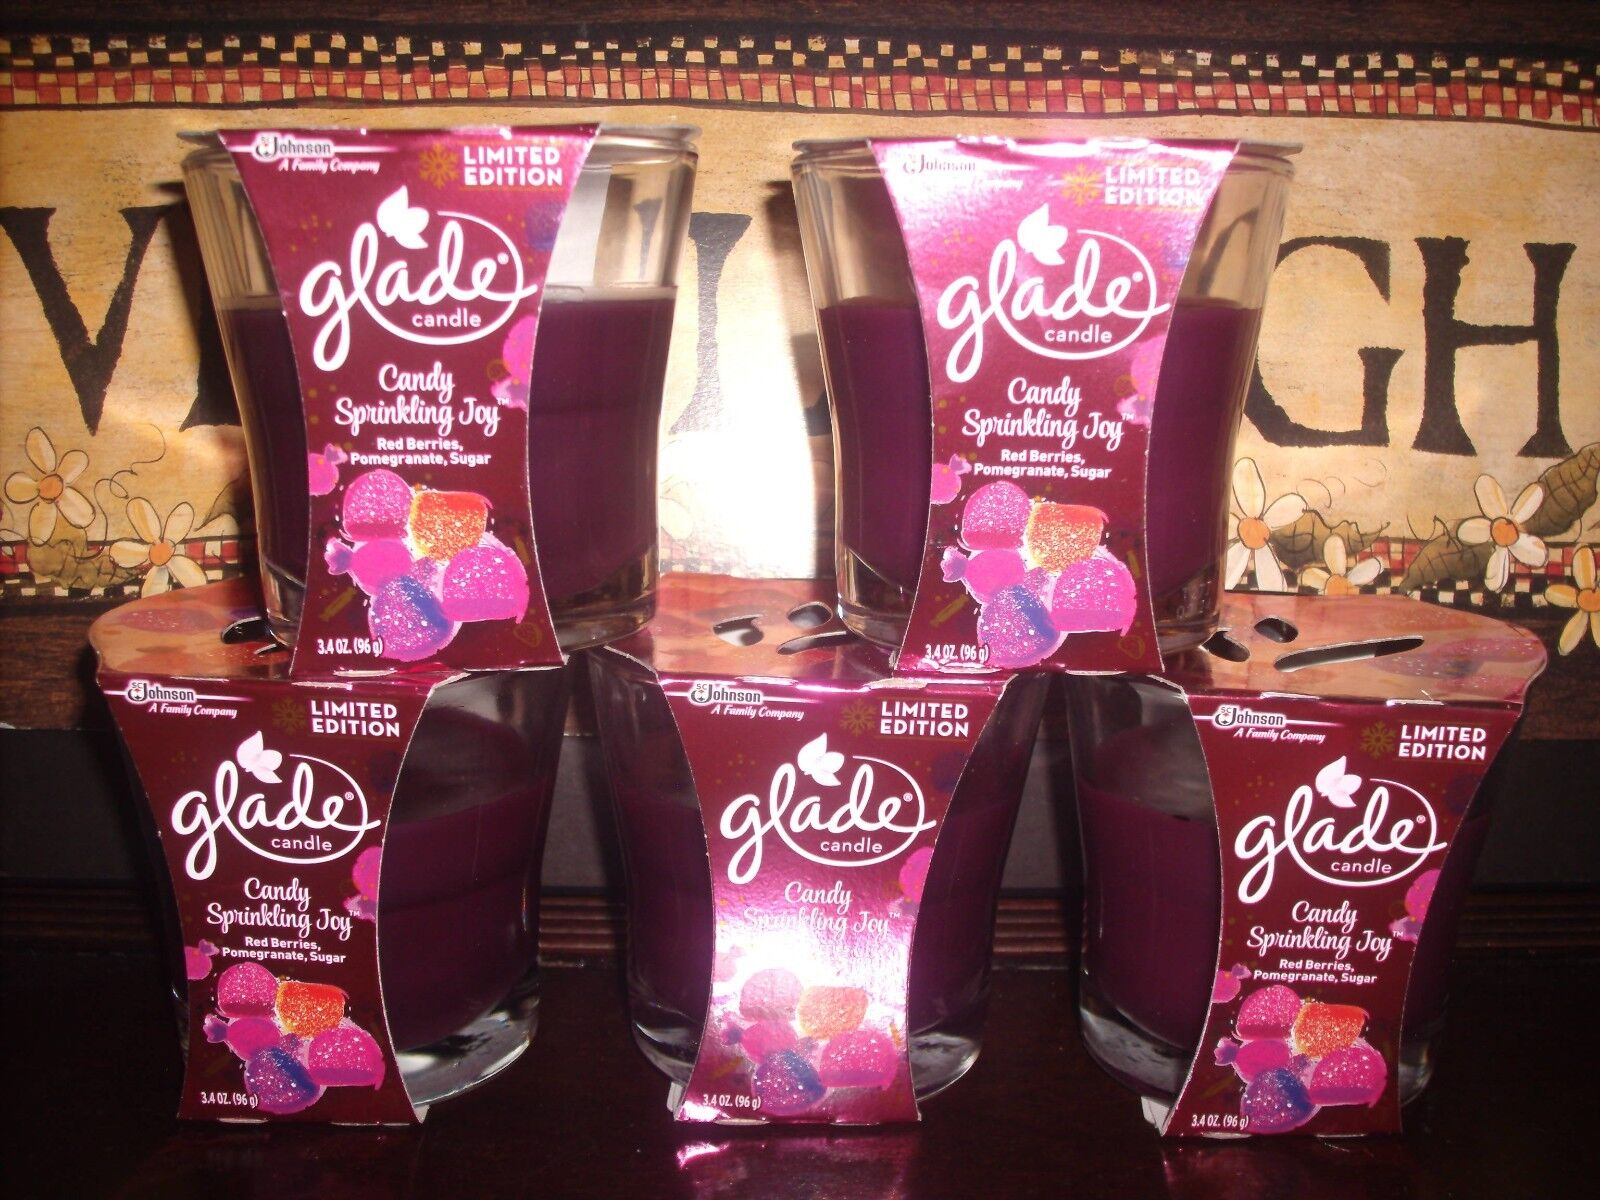 CANDY SPRINKLING JOY 5 Glade Jar Glass Holiday Candles 3.4 oz each Candle